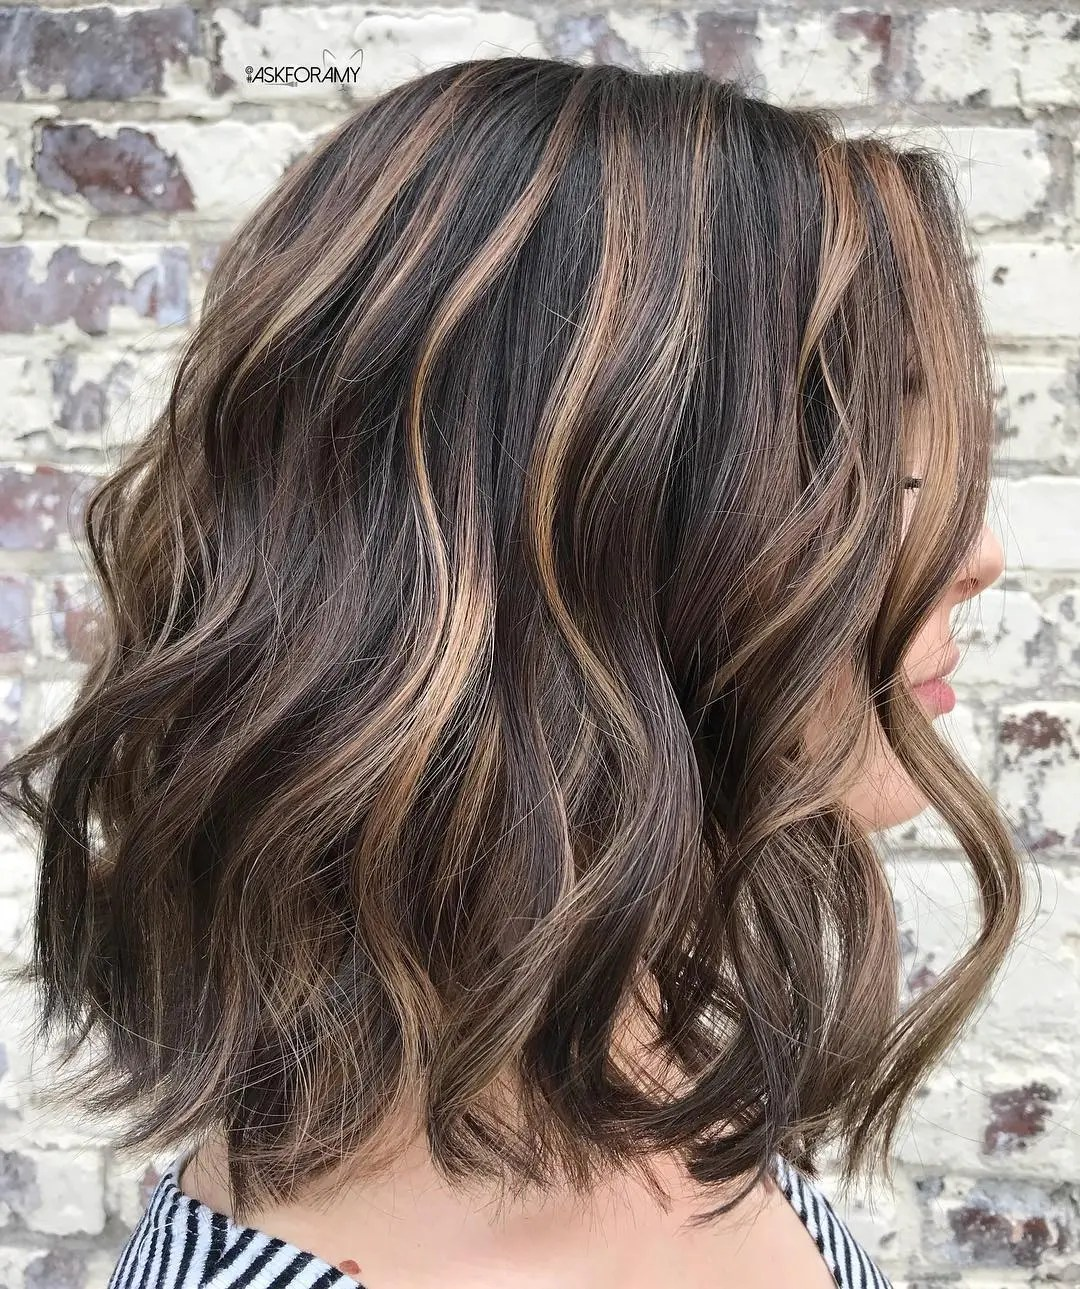 Brown Hairstyle with Beige Highlights